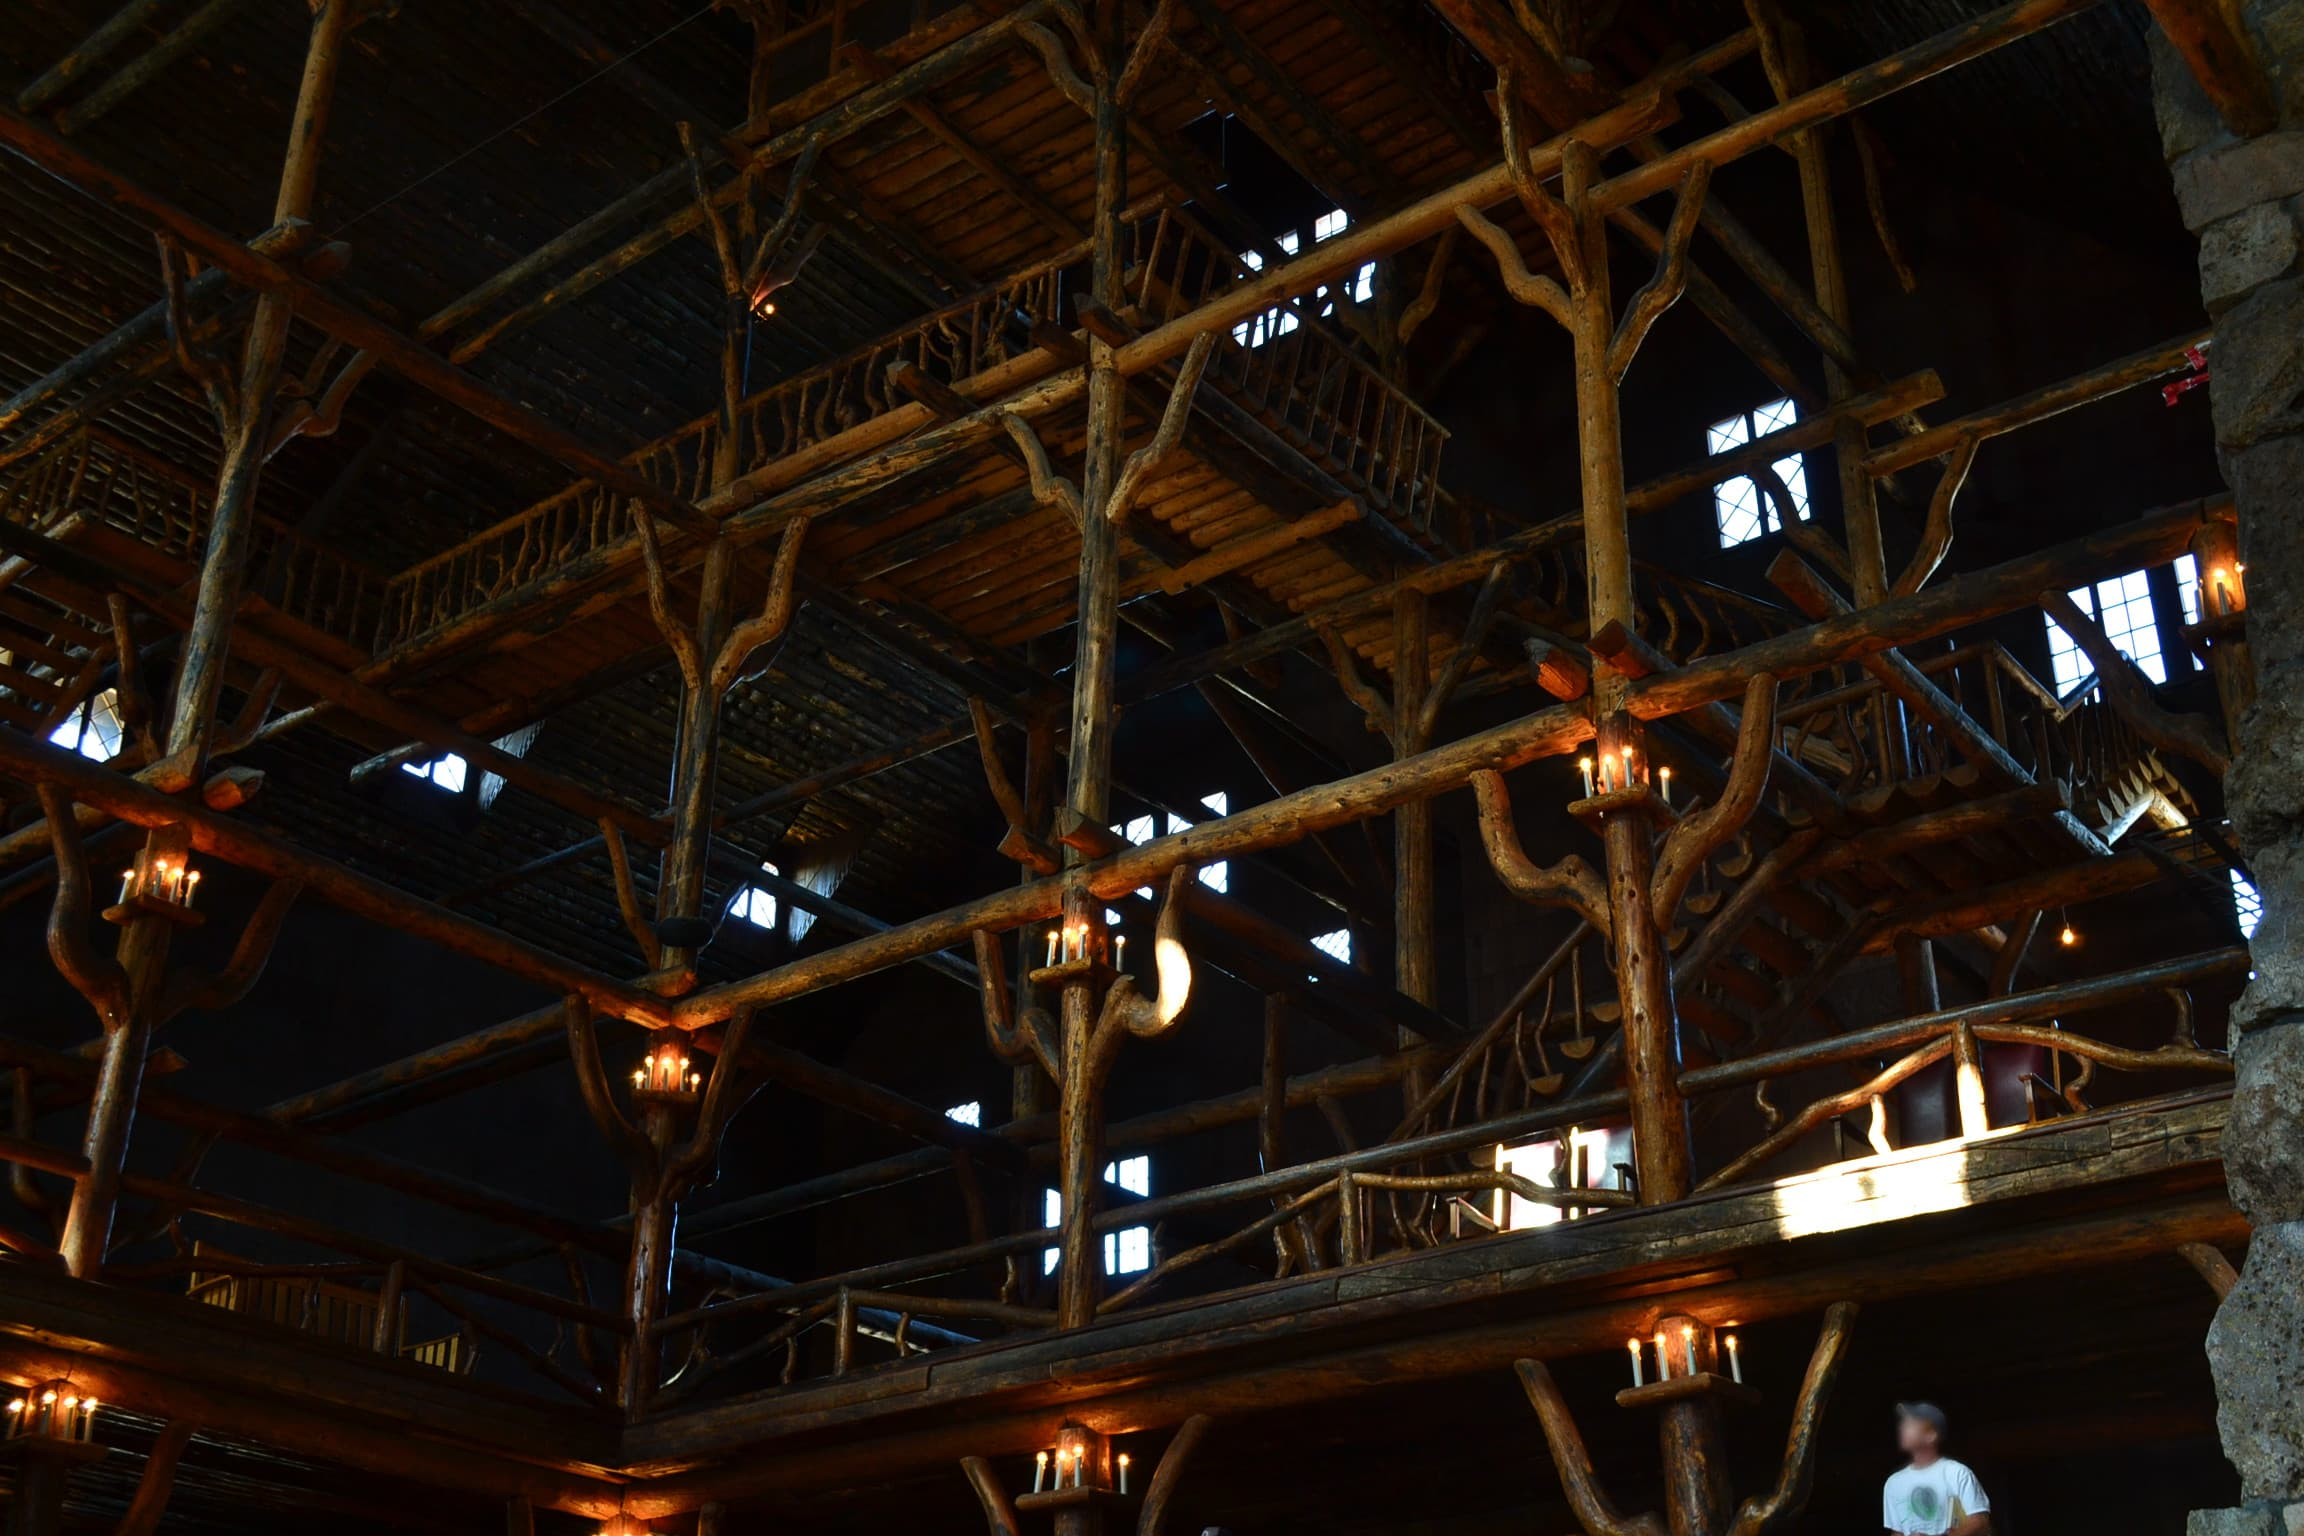 Intricate woodwork in the Old Faithful Inn.